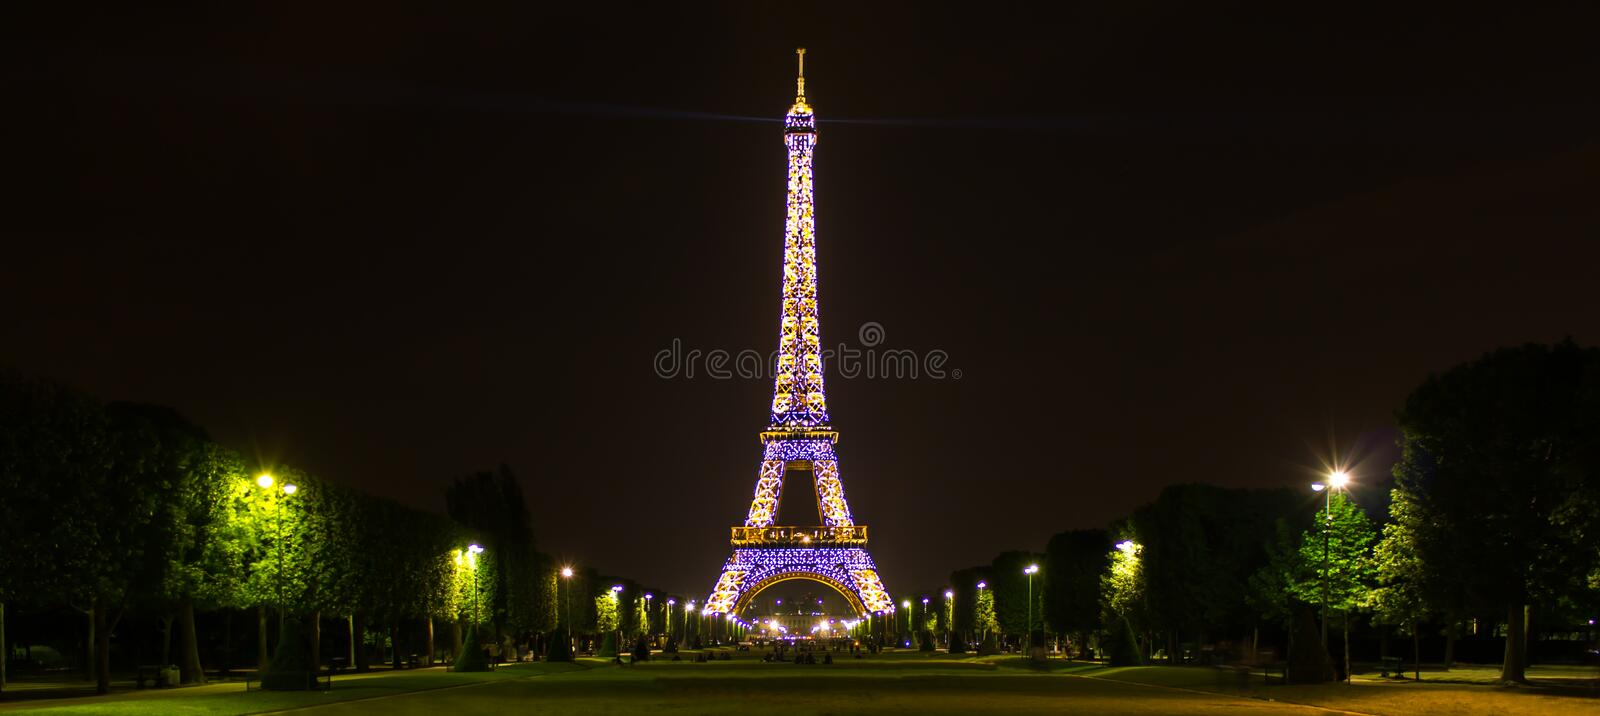 Paris, Île-de-France / France - May 2, 2011: A night long exposure of the Sparkling Eiffel Tower stock image